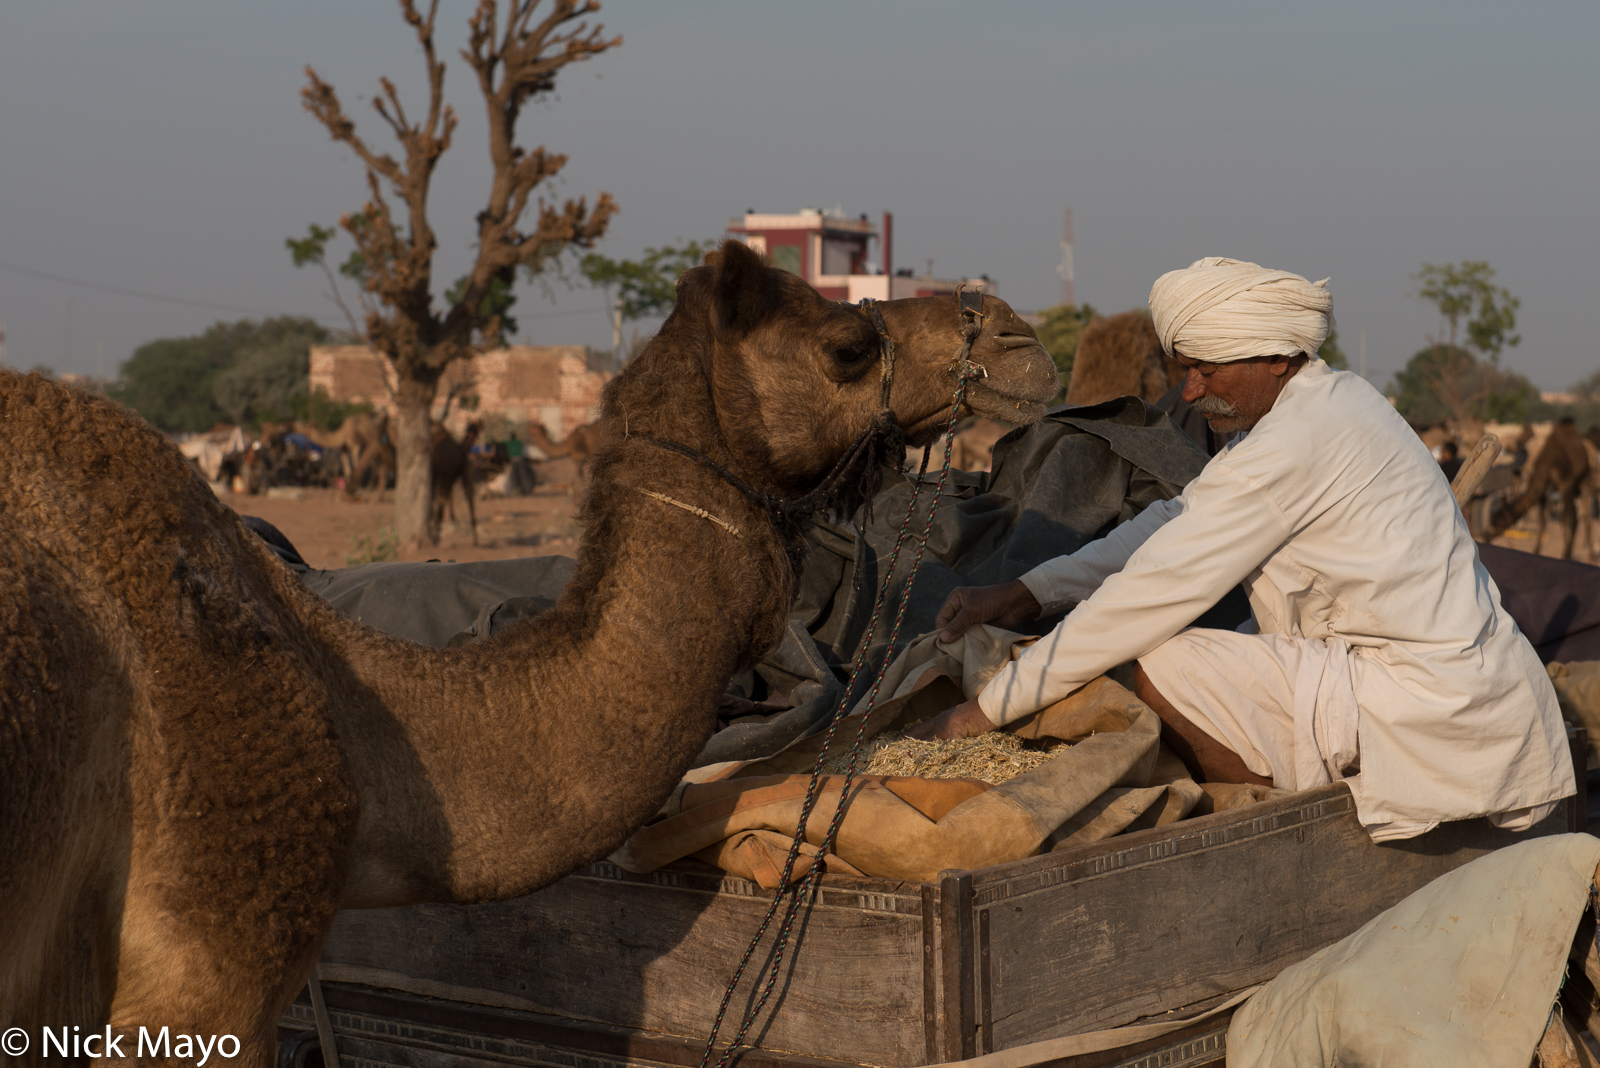 Camel, Festival, India, Rajasthan, Turban, photo